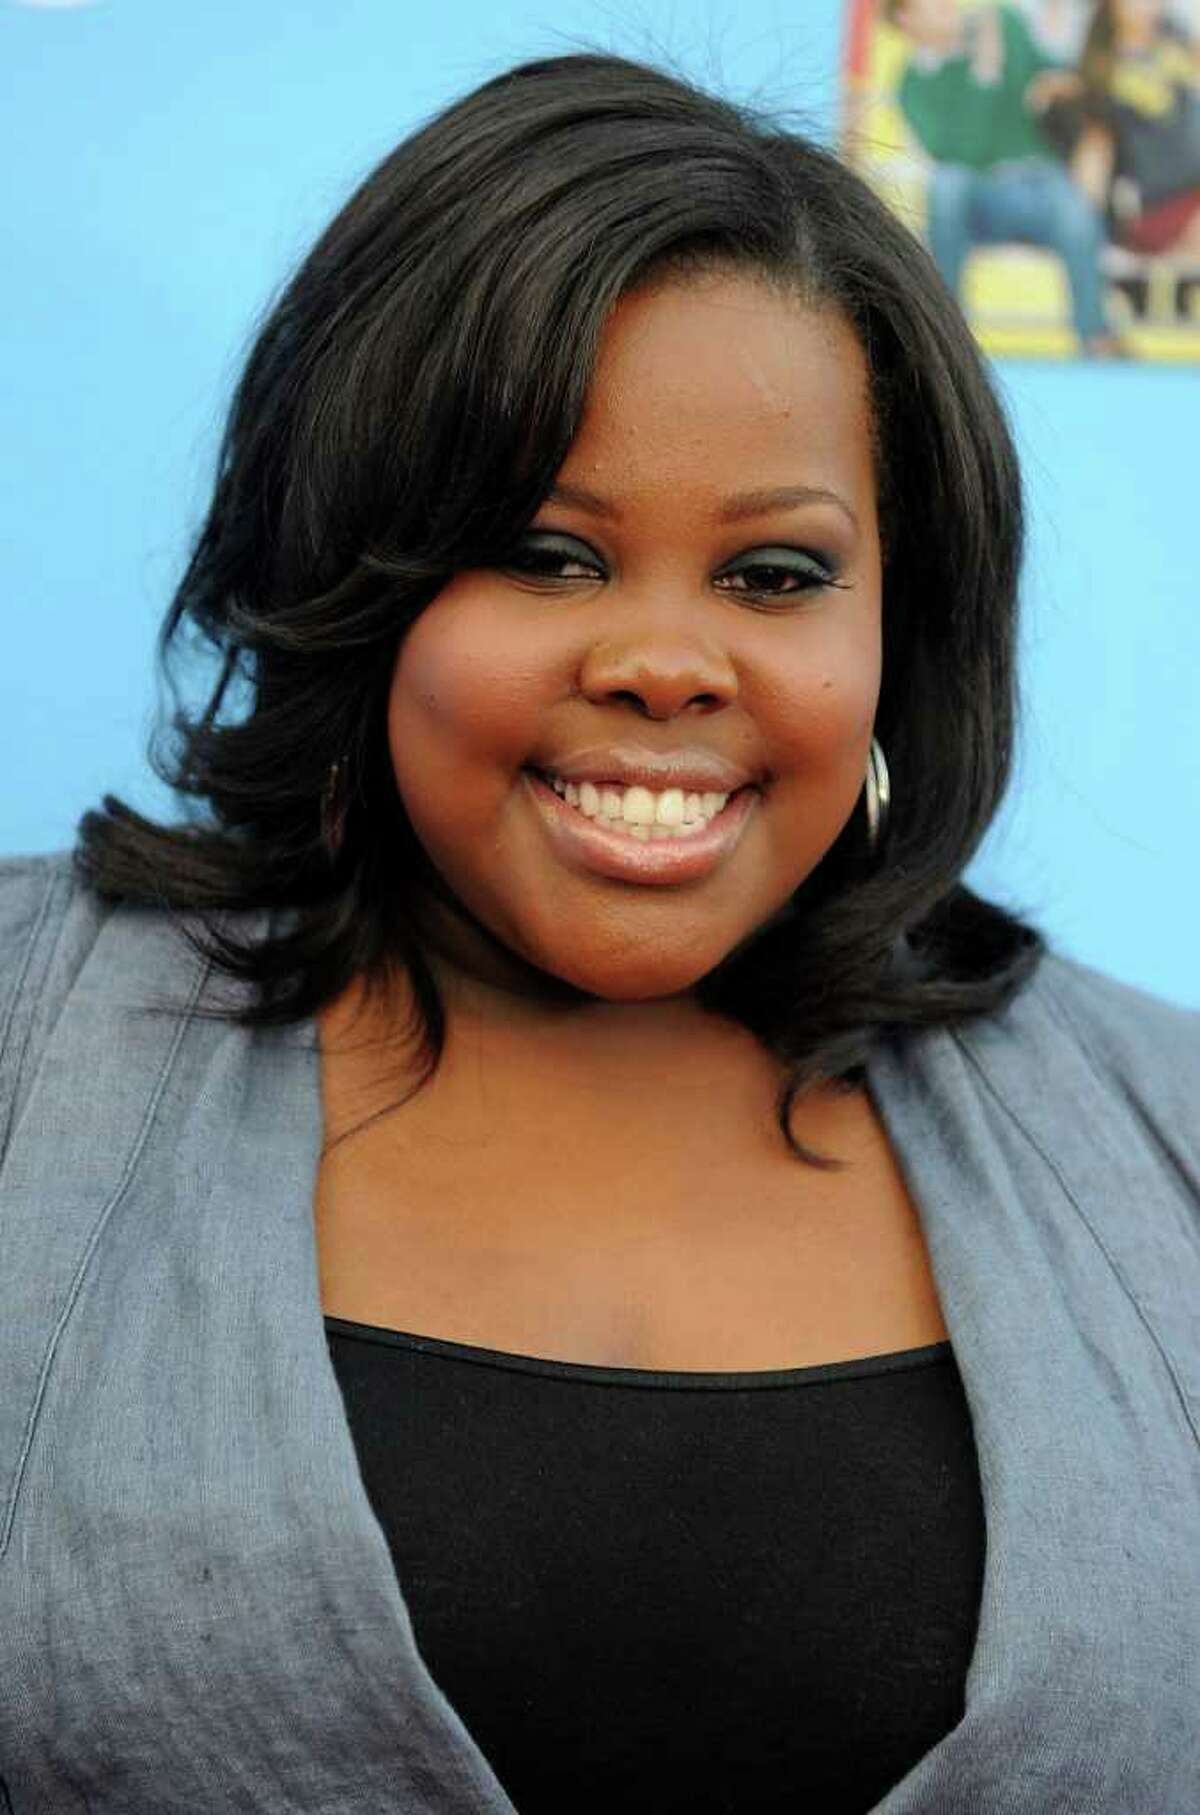 """HOLLYWOOD - SEPTEMBER 07: Actress Amber Riley arrives at the premiere of 20th Century Fox's """"Glee"""" Season 2 held at Paramount Studios on September 7, 2010 in Hollywood, California. (Photo by Kevin Winter/Getty Images) *** Local Caption *** Amber Riley"""